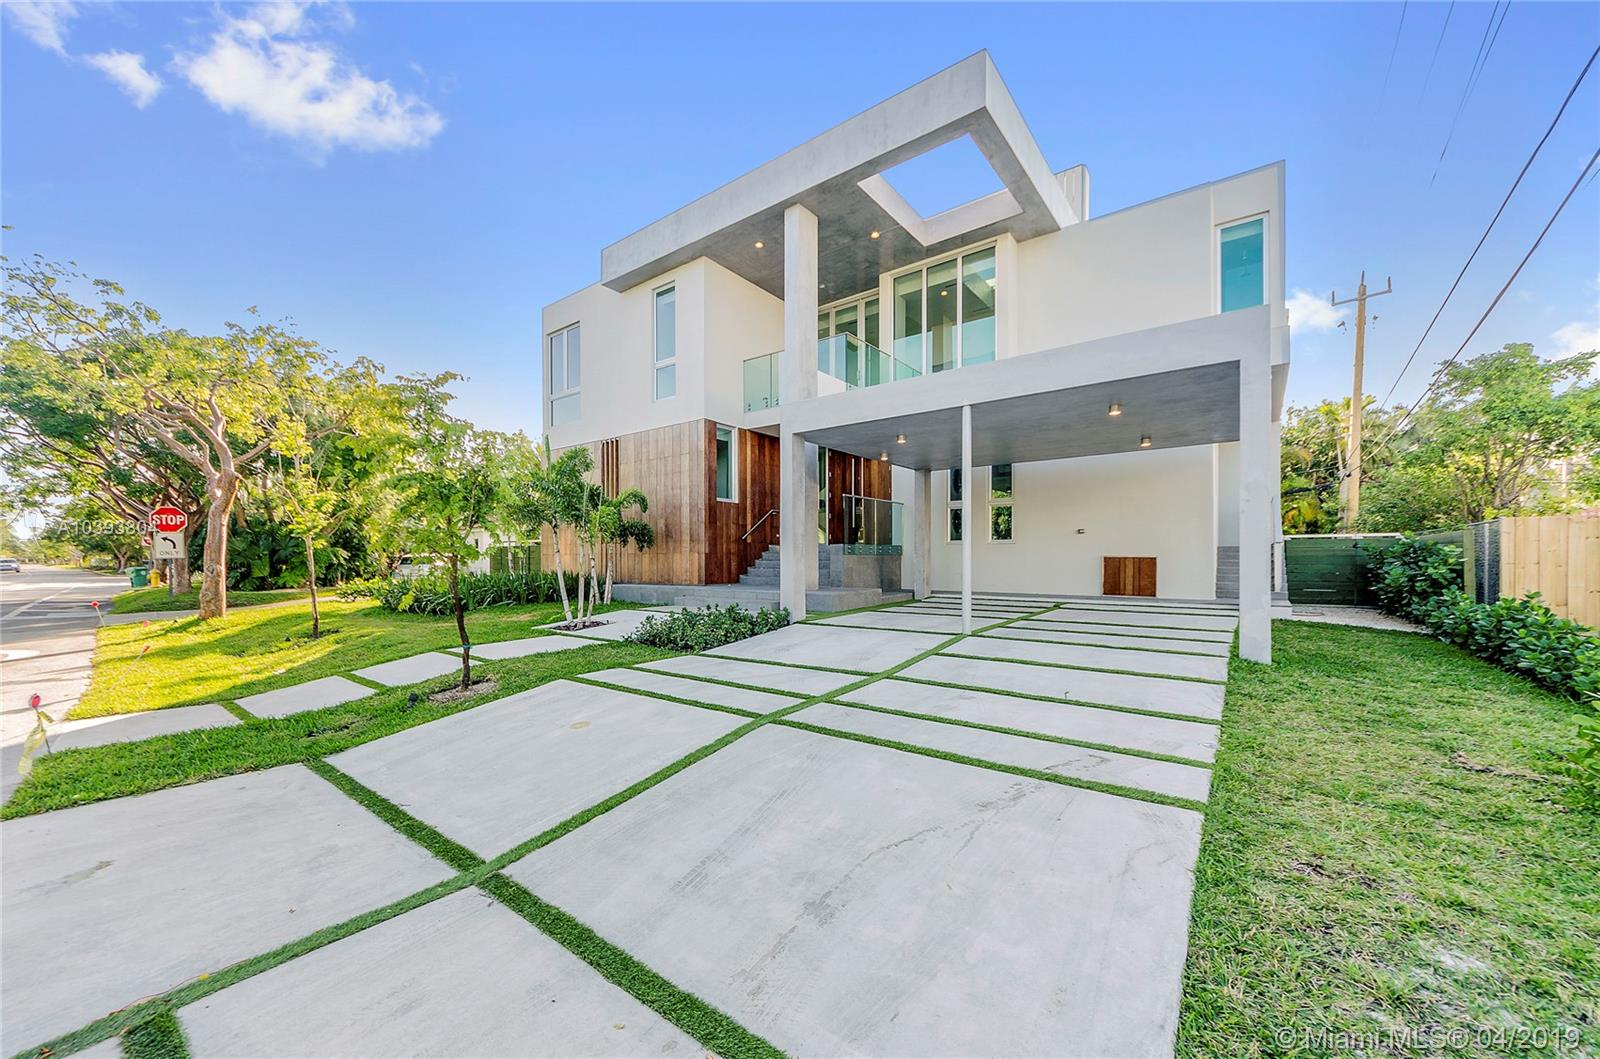 544 Ridgewood Rd, Key Biscayne in Miami-dade County County, FL 33149 Home for Sale